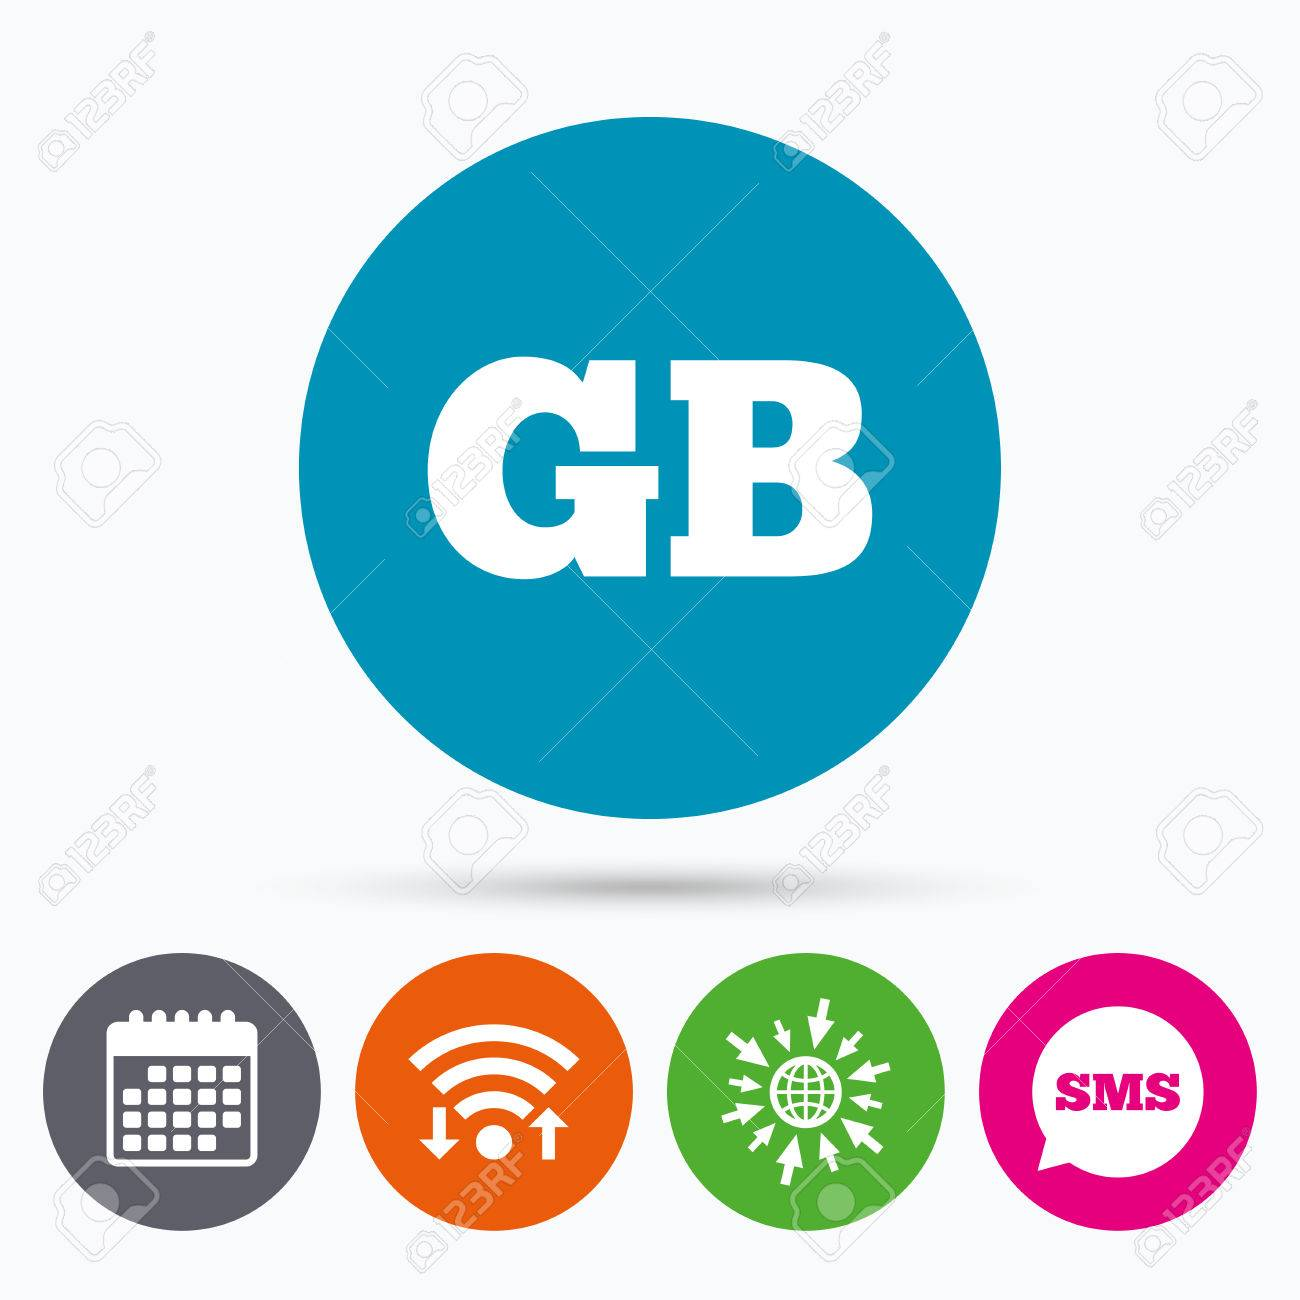 wifi sms and calendar icons british language sign icon gb